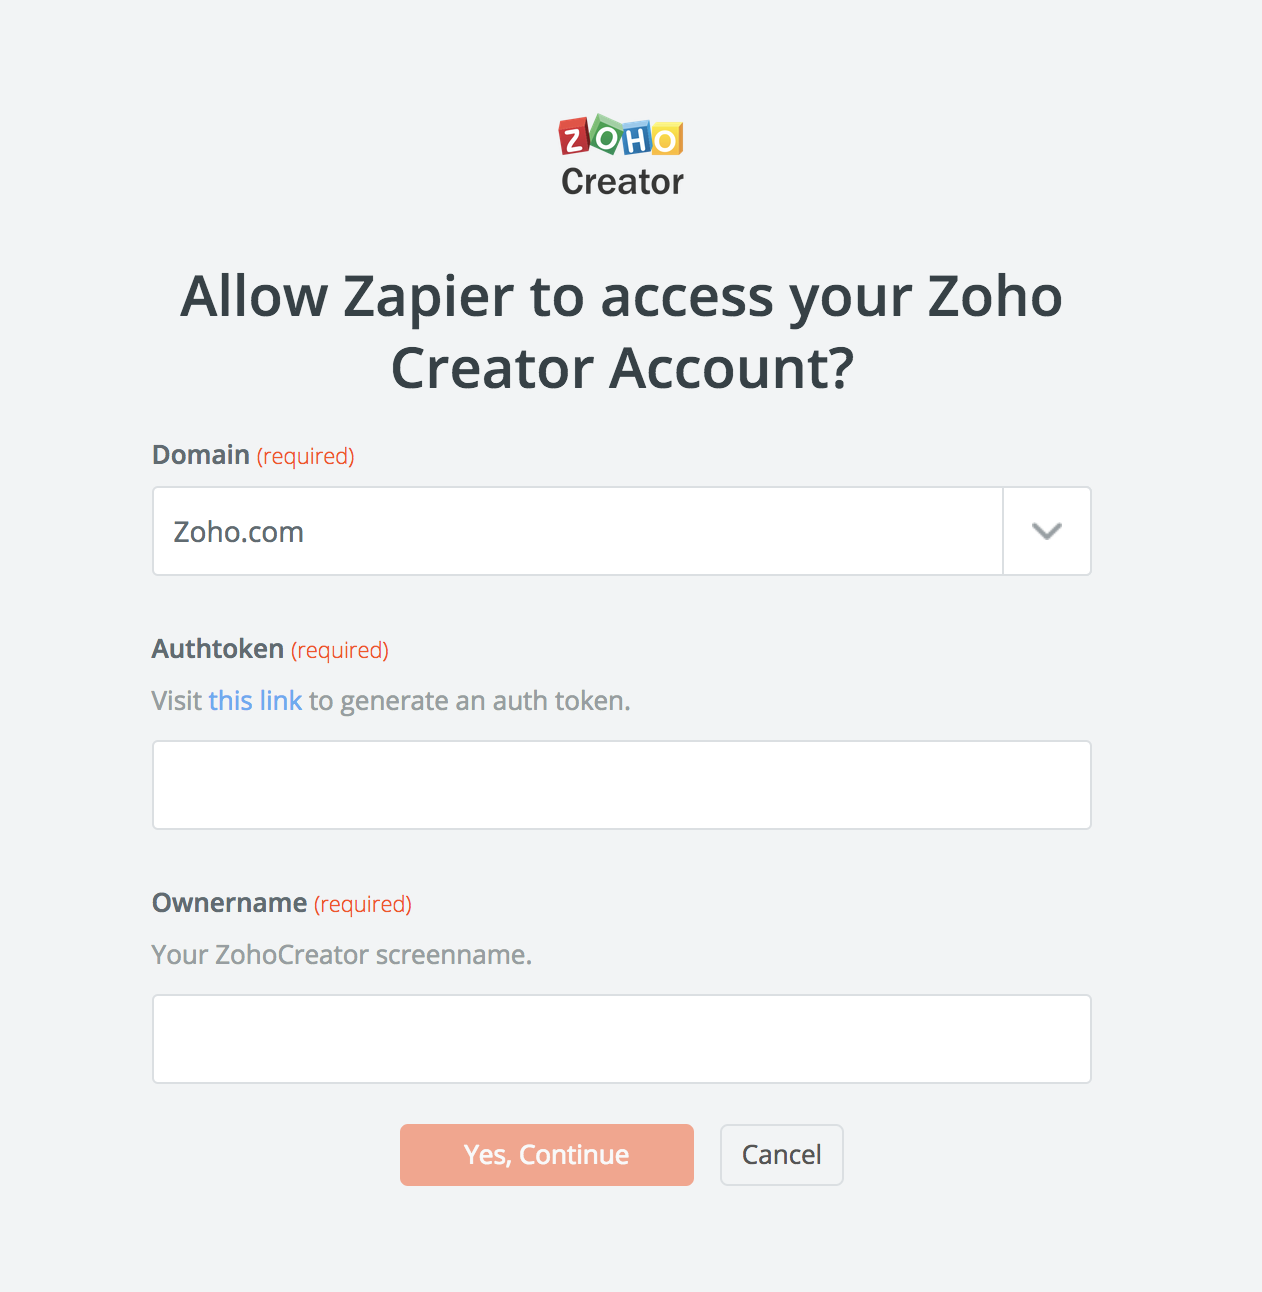 Zoho Creator Ownerame Screenname